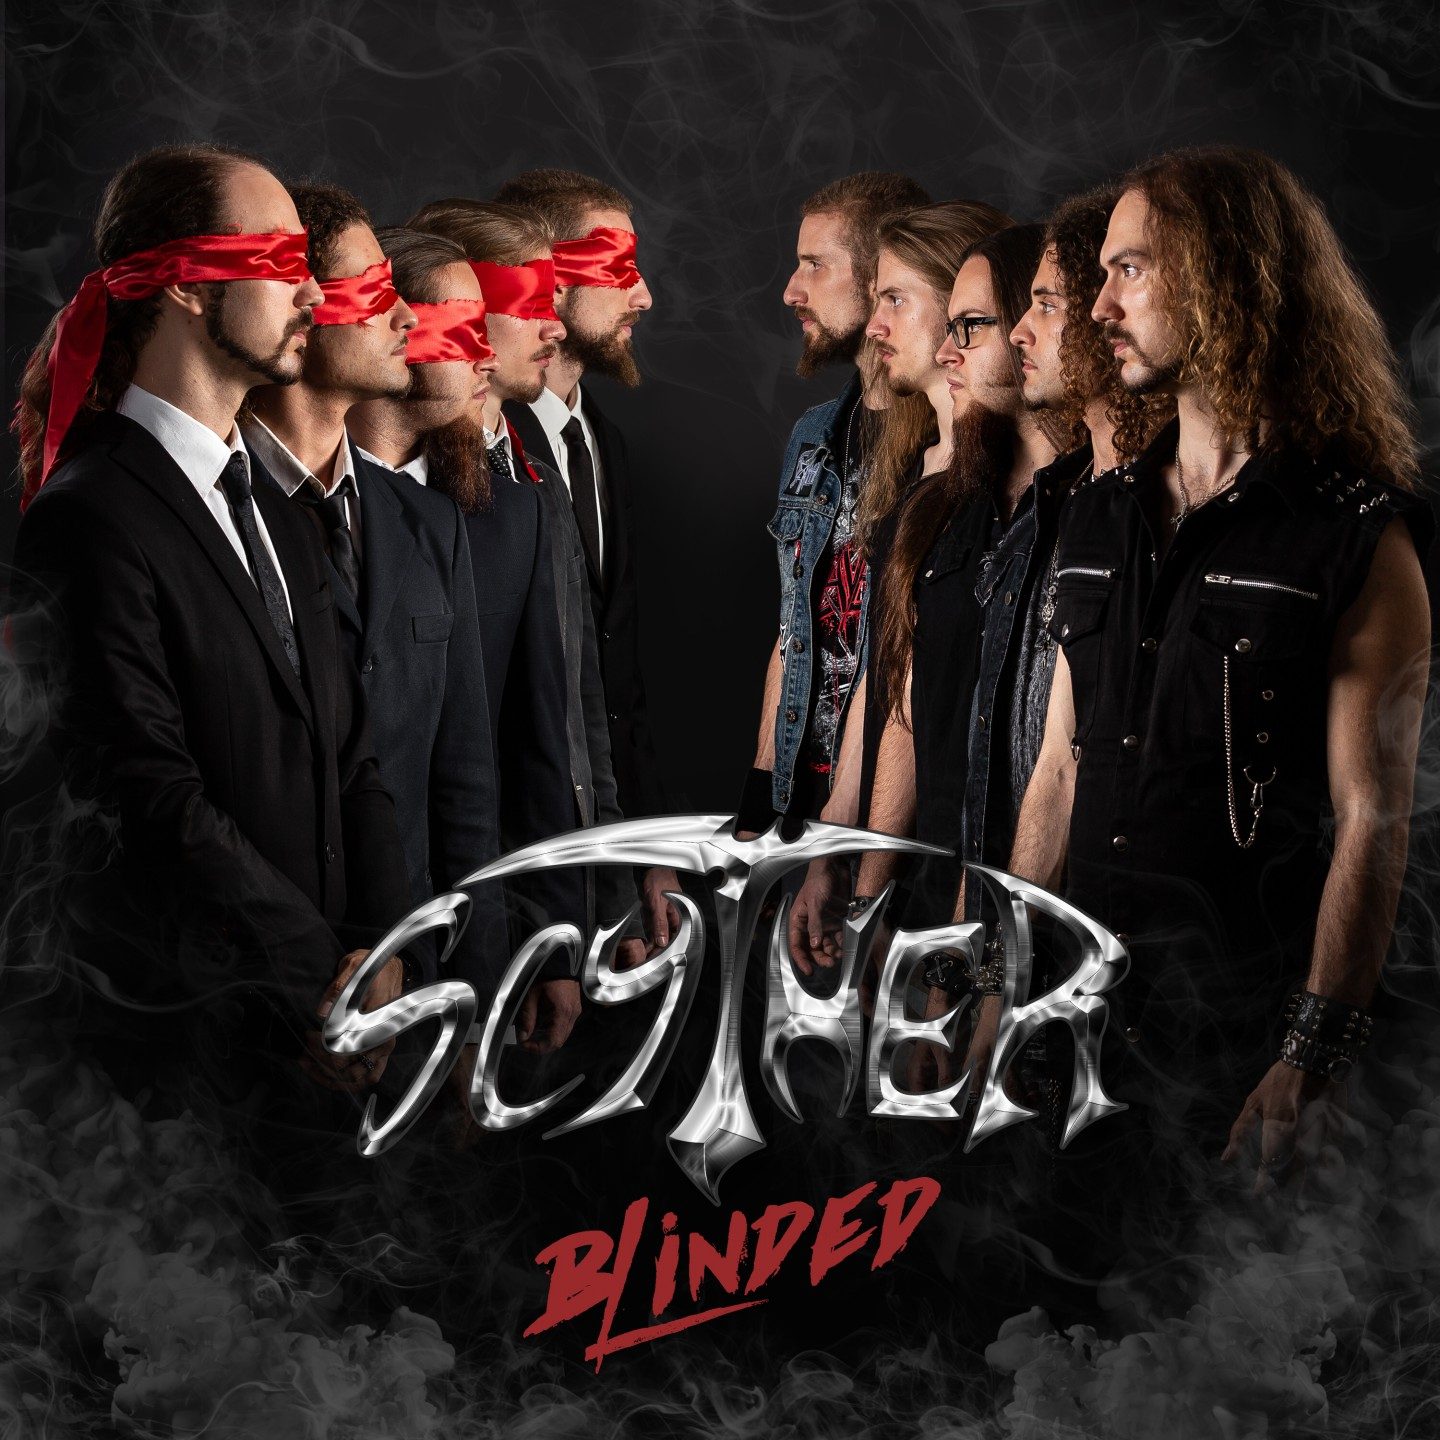 """Recensione: Scyther """"Blinded"""" Heart Of Steel Records"""